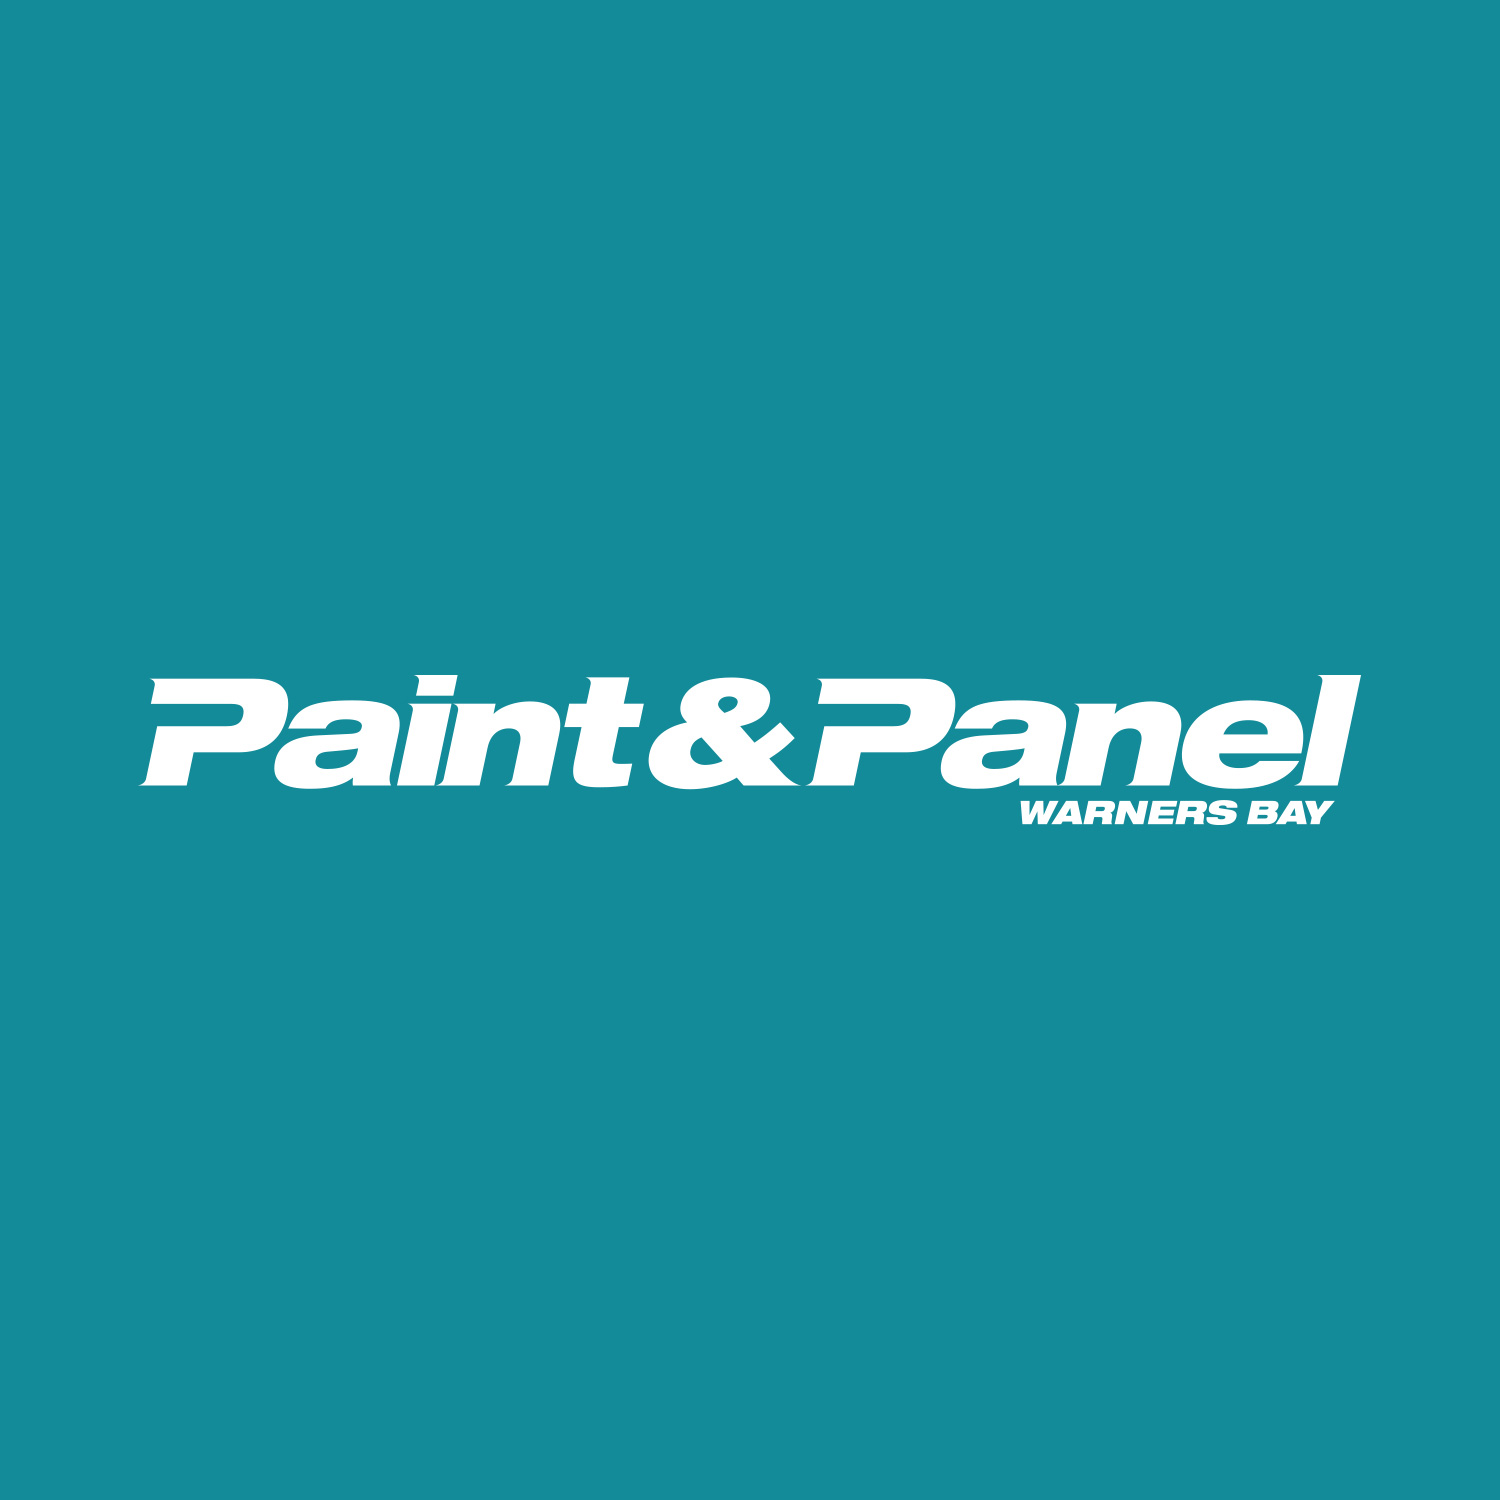 Warners Bay Paint & Panel